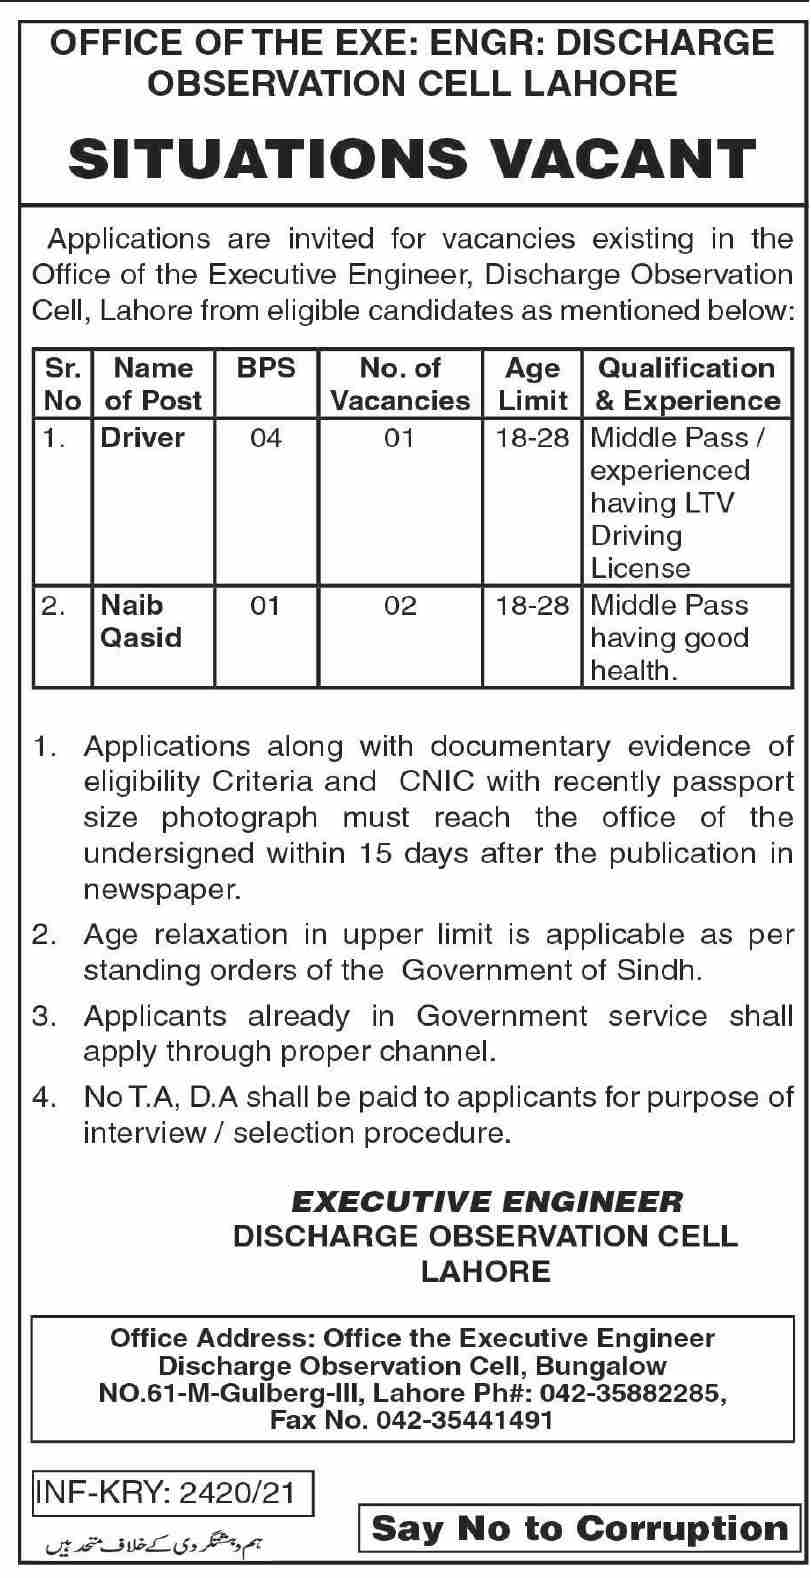 Executive Engineer Office Discharge Observation Cell Lahore Jobs 2021 in Pakistan